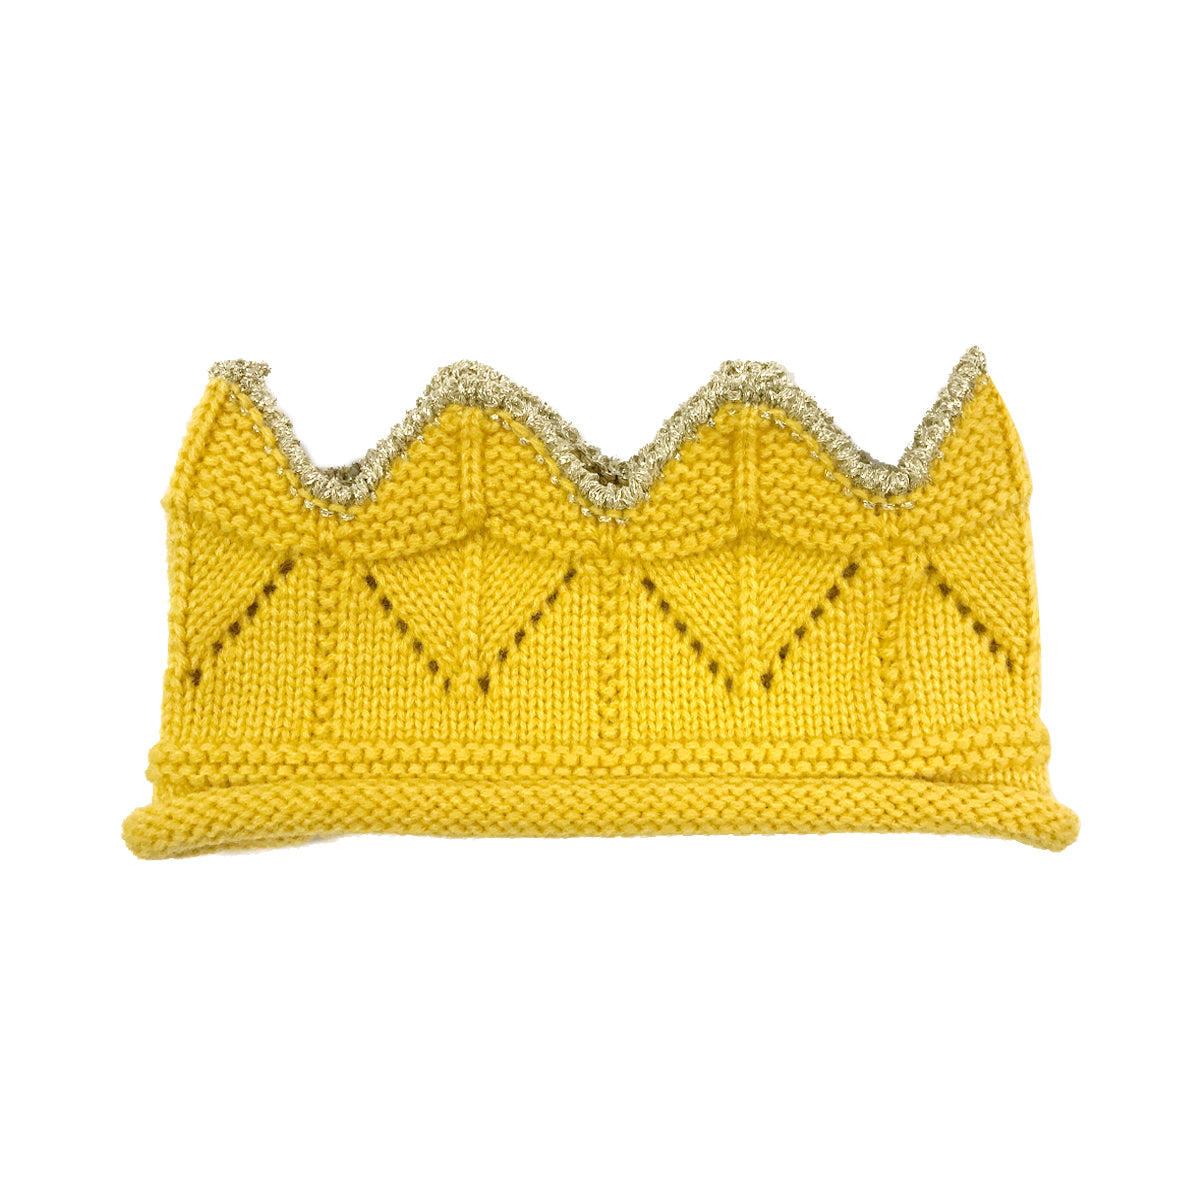 Wrapables Baby Boy & Girl Birthday Party Crochet Knitted Crown Headband Hat with Gold Trim